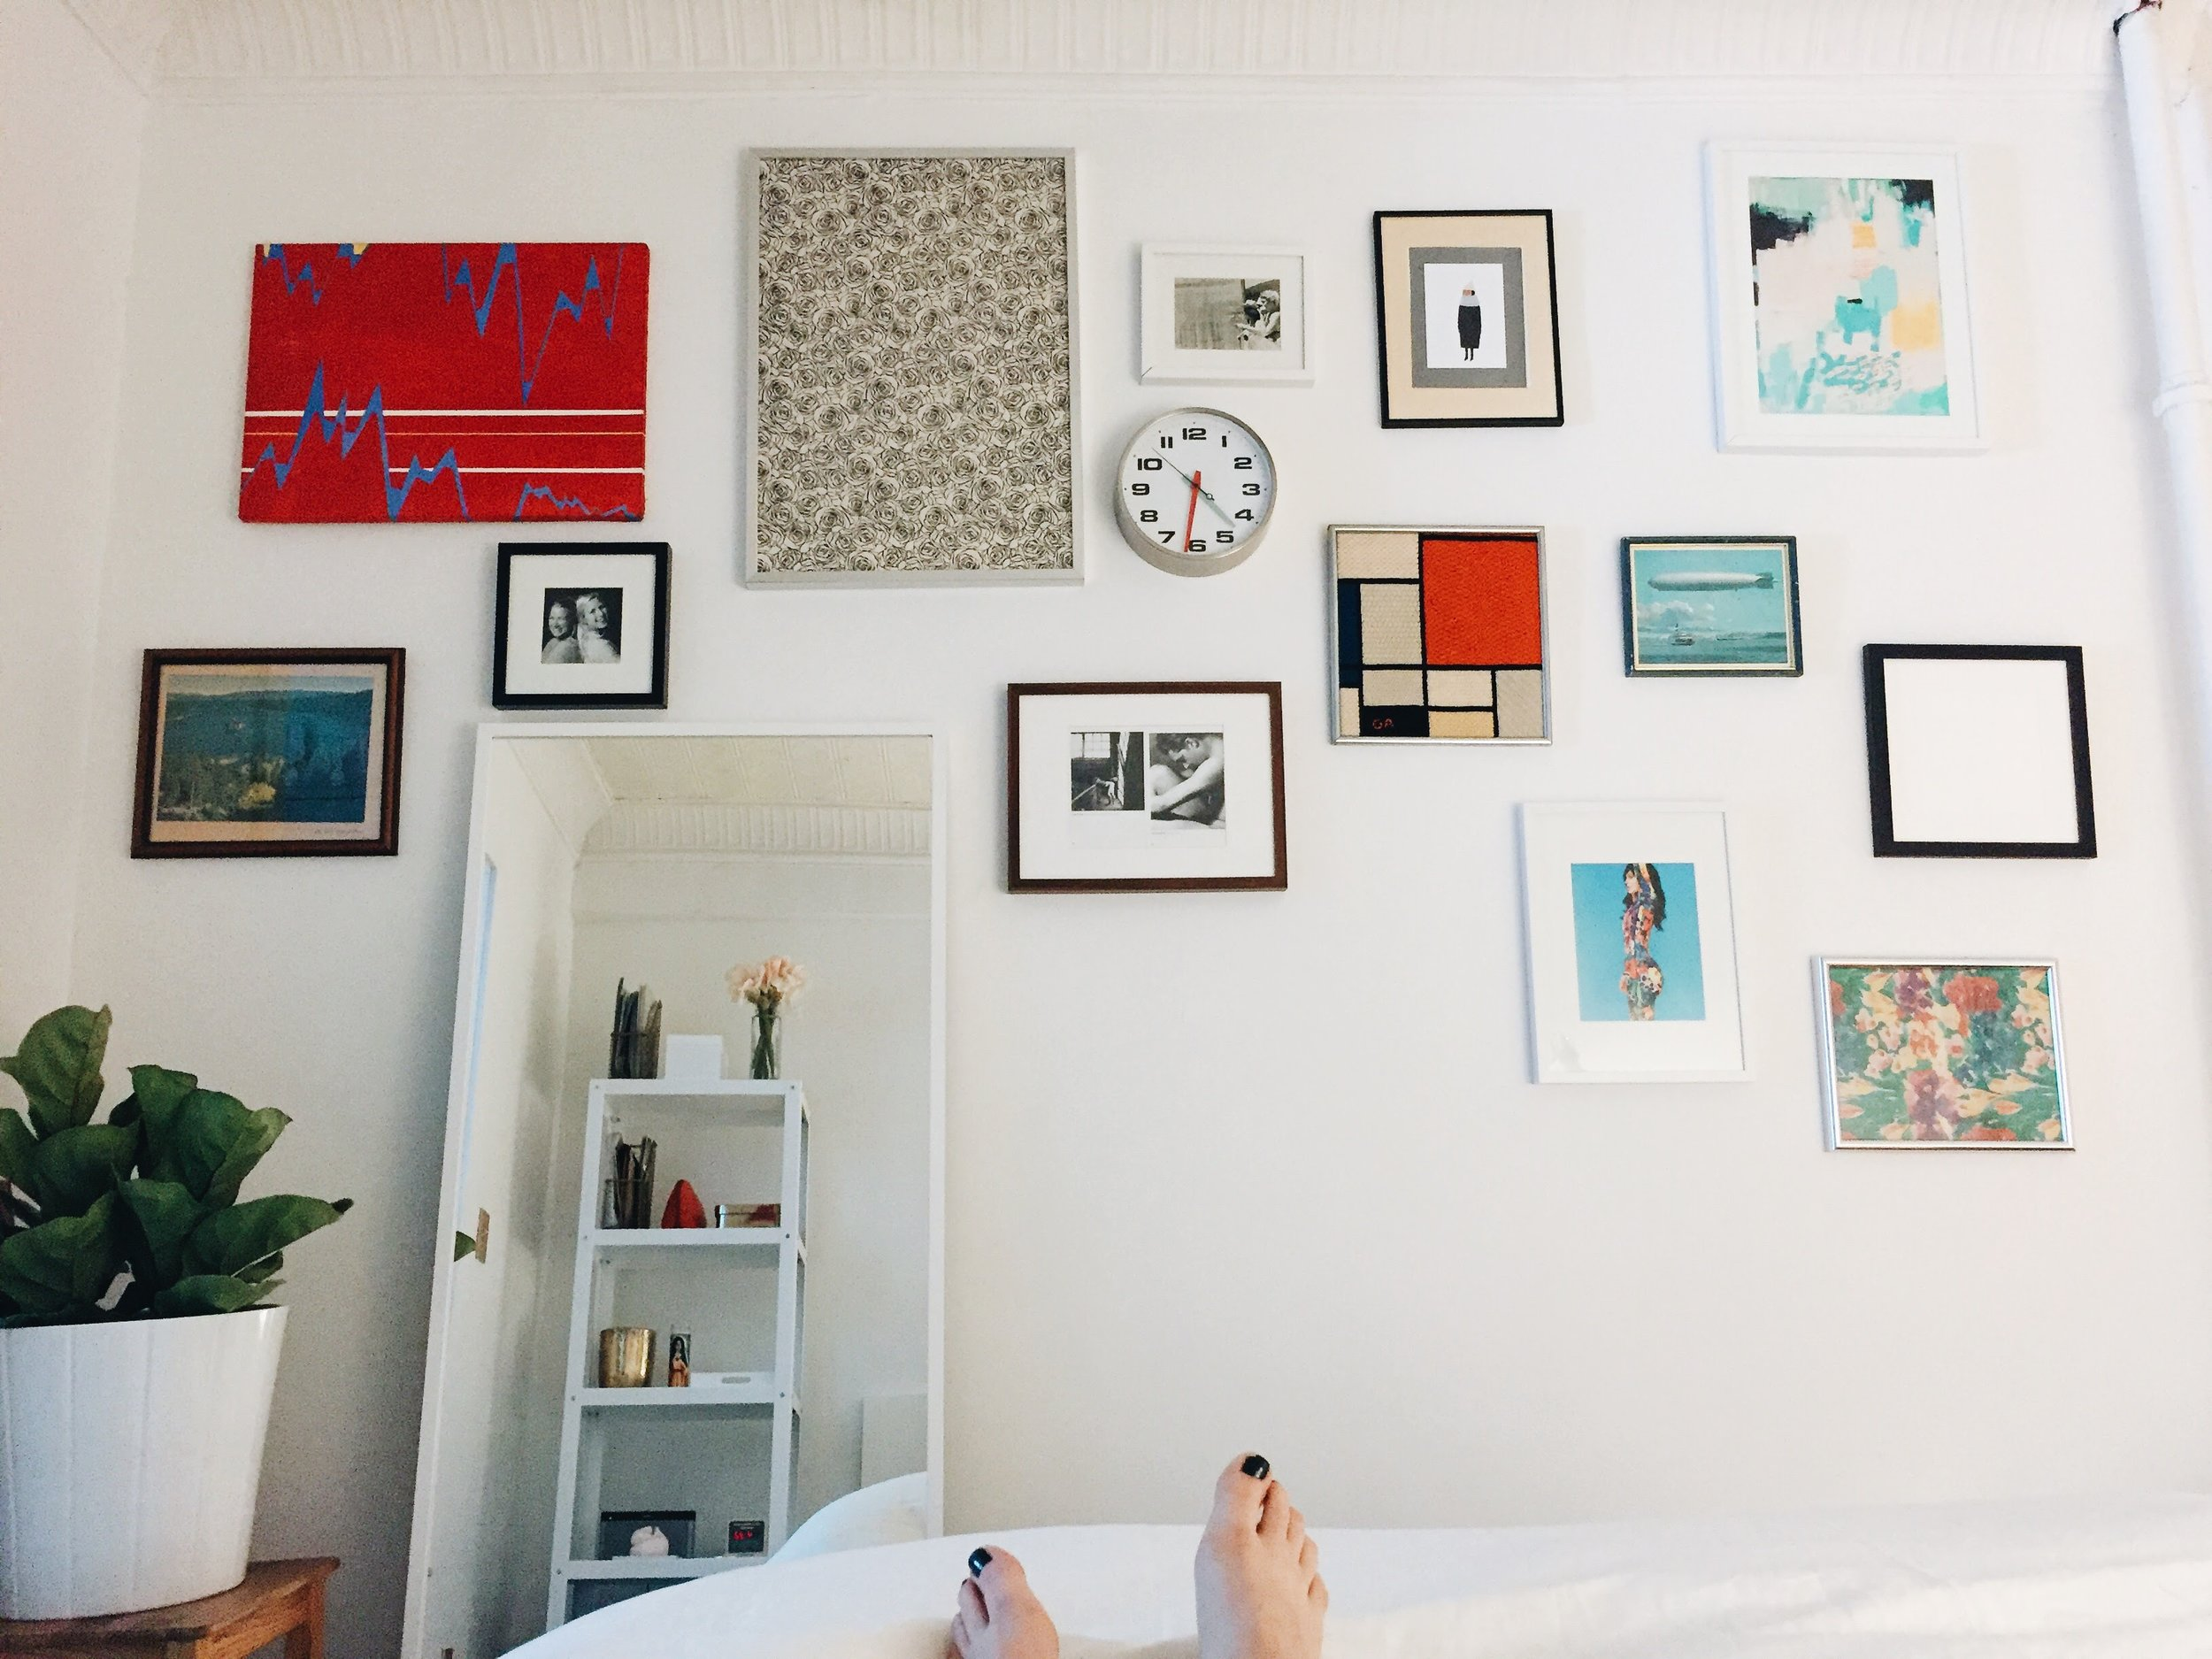 Day, like, 2 in Brooklyn. I didn't have much furniture set up but I *did* have all my art up on the wall.